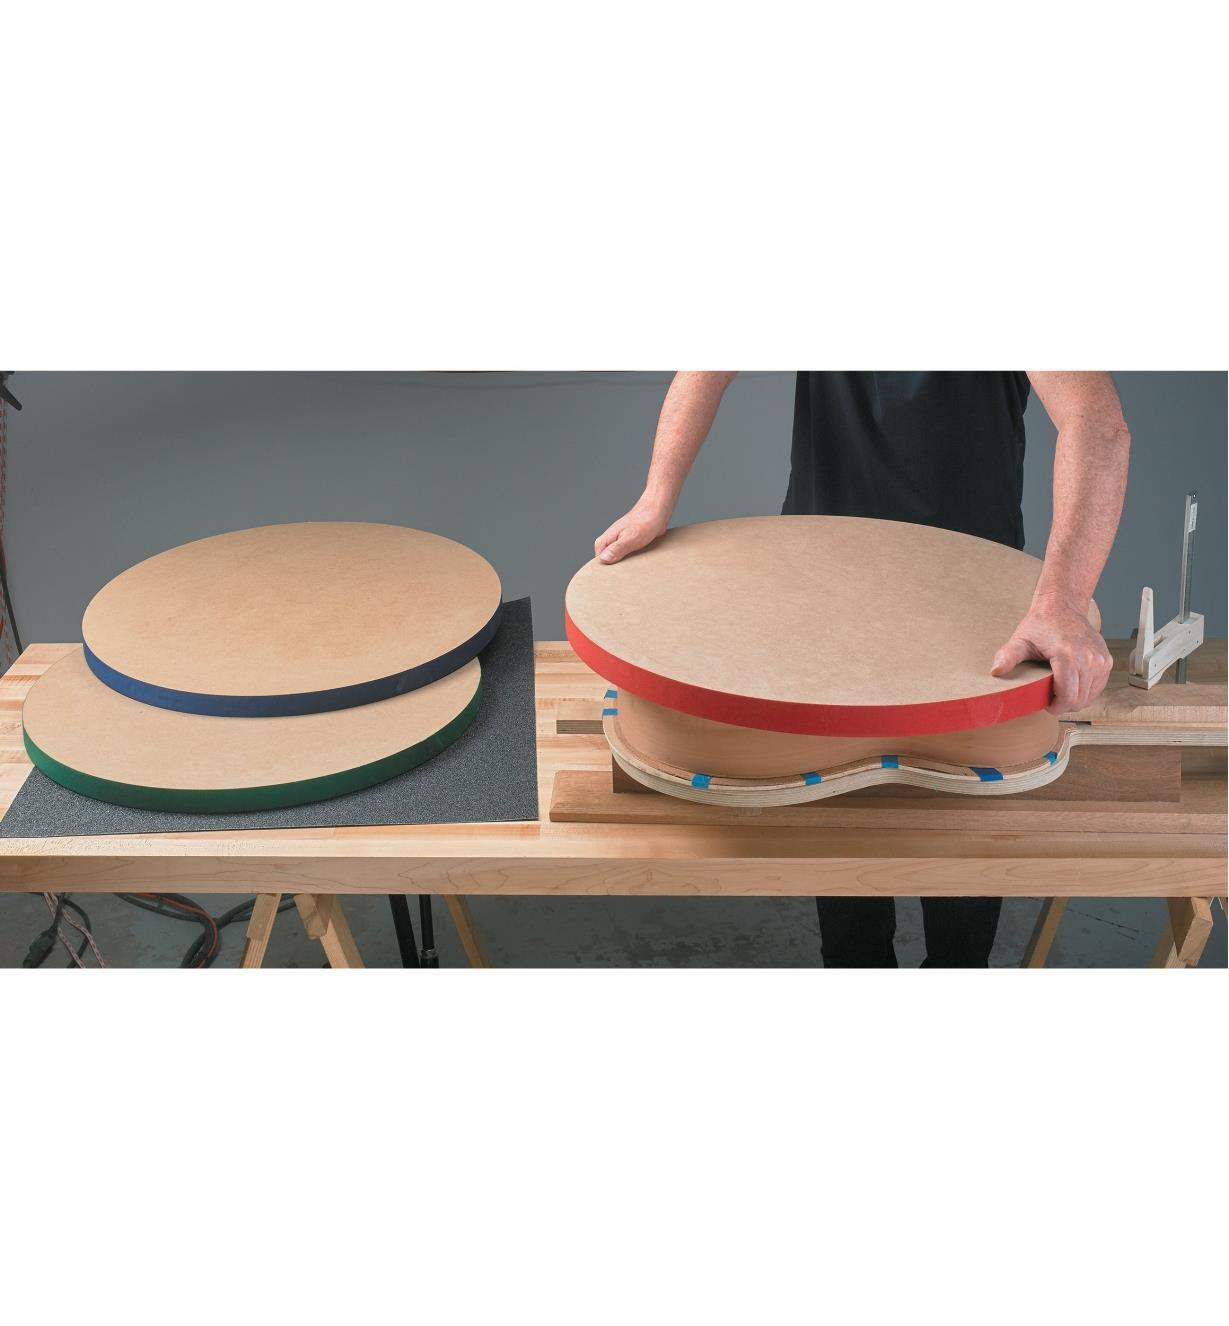 Radius Dishes